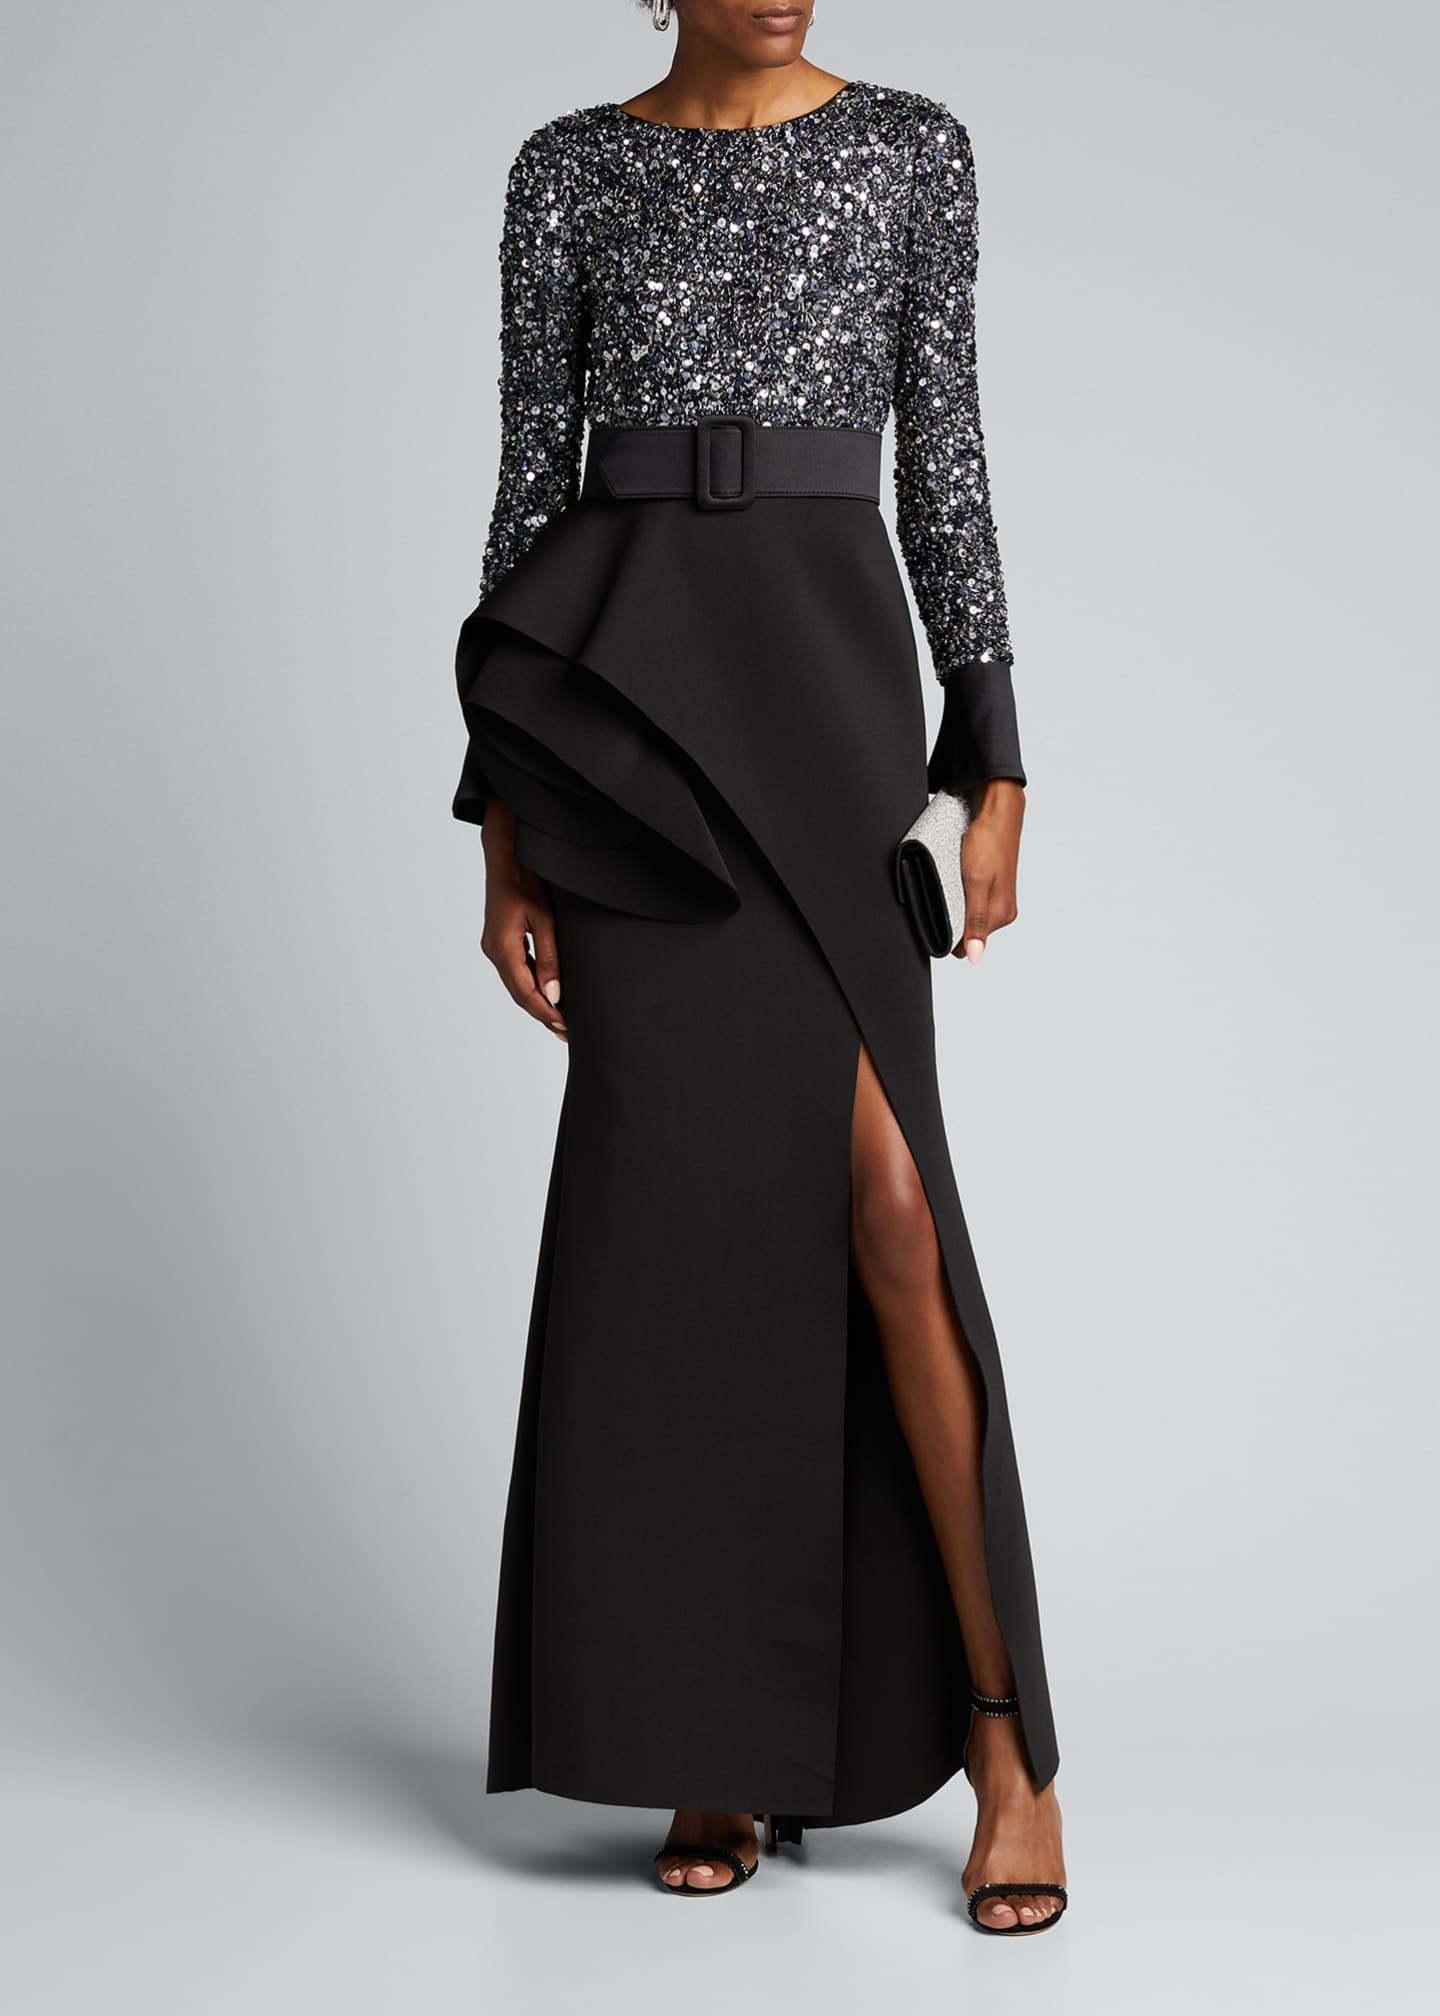 Badgley Mischka Couture Long-Sleeve Sequined Gown